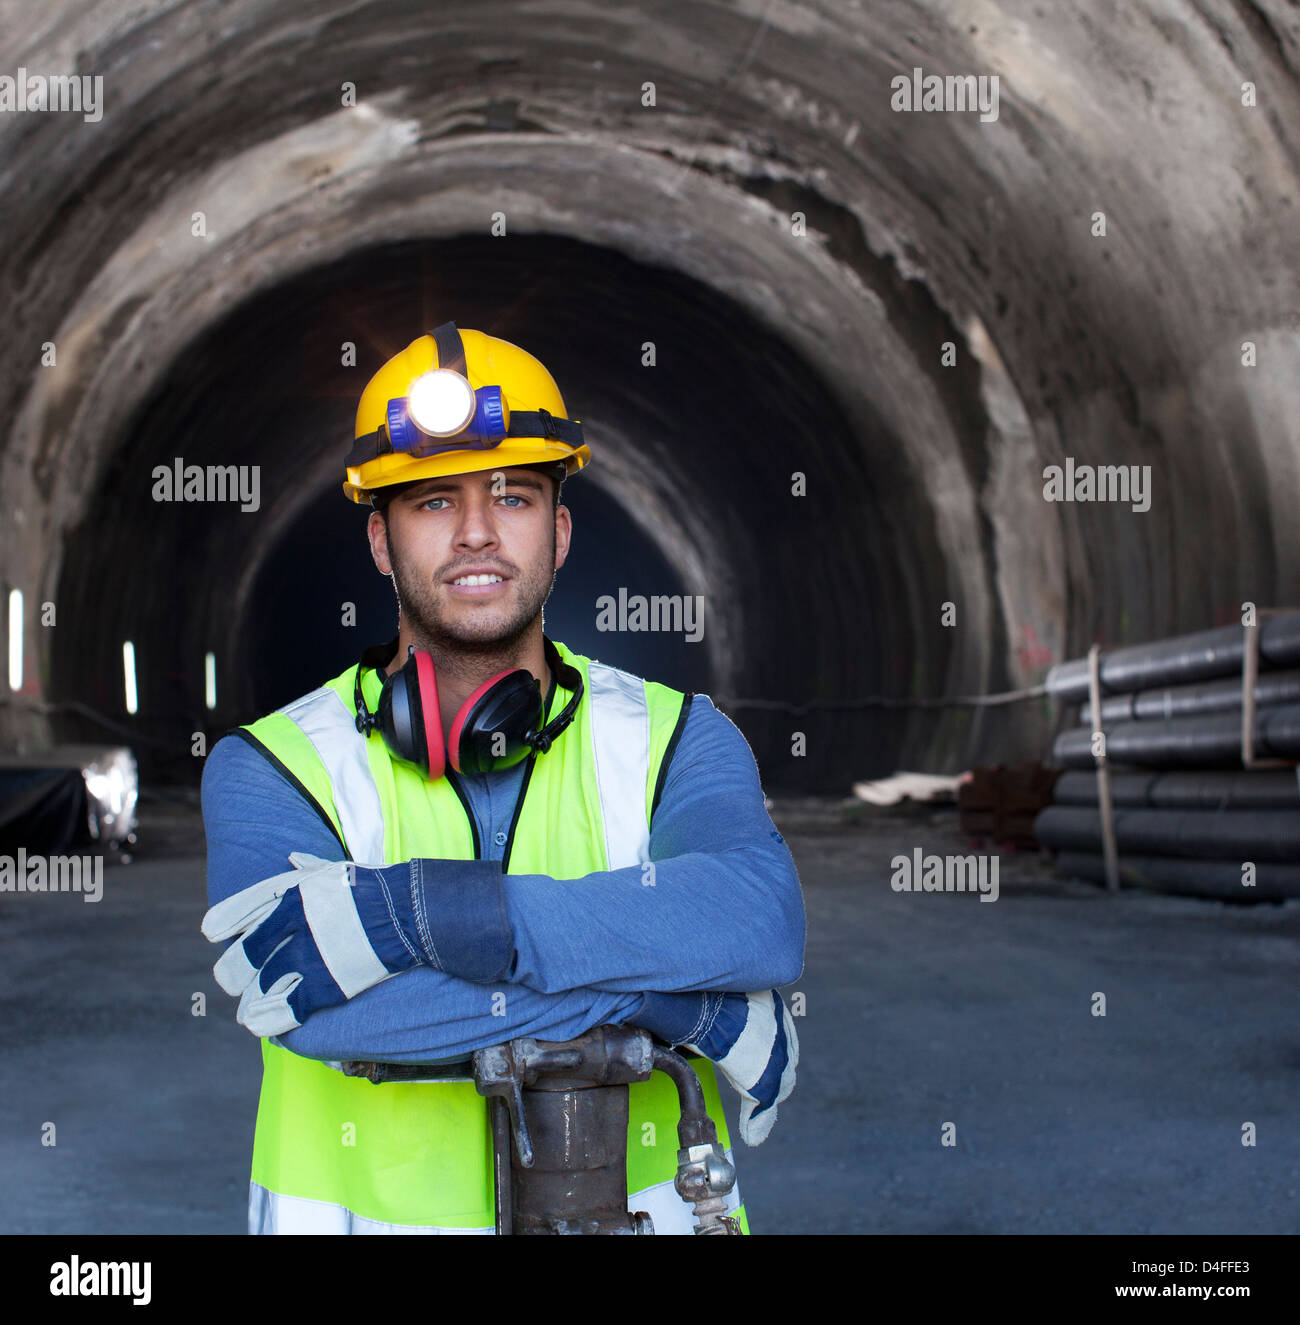 Worker standing in tunnel - Stock Image